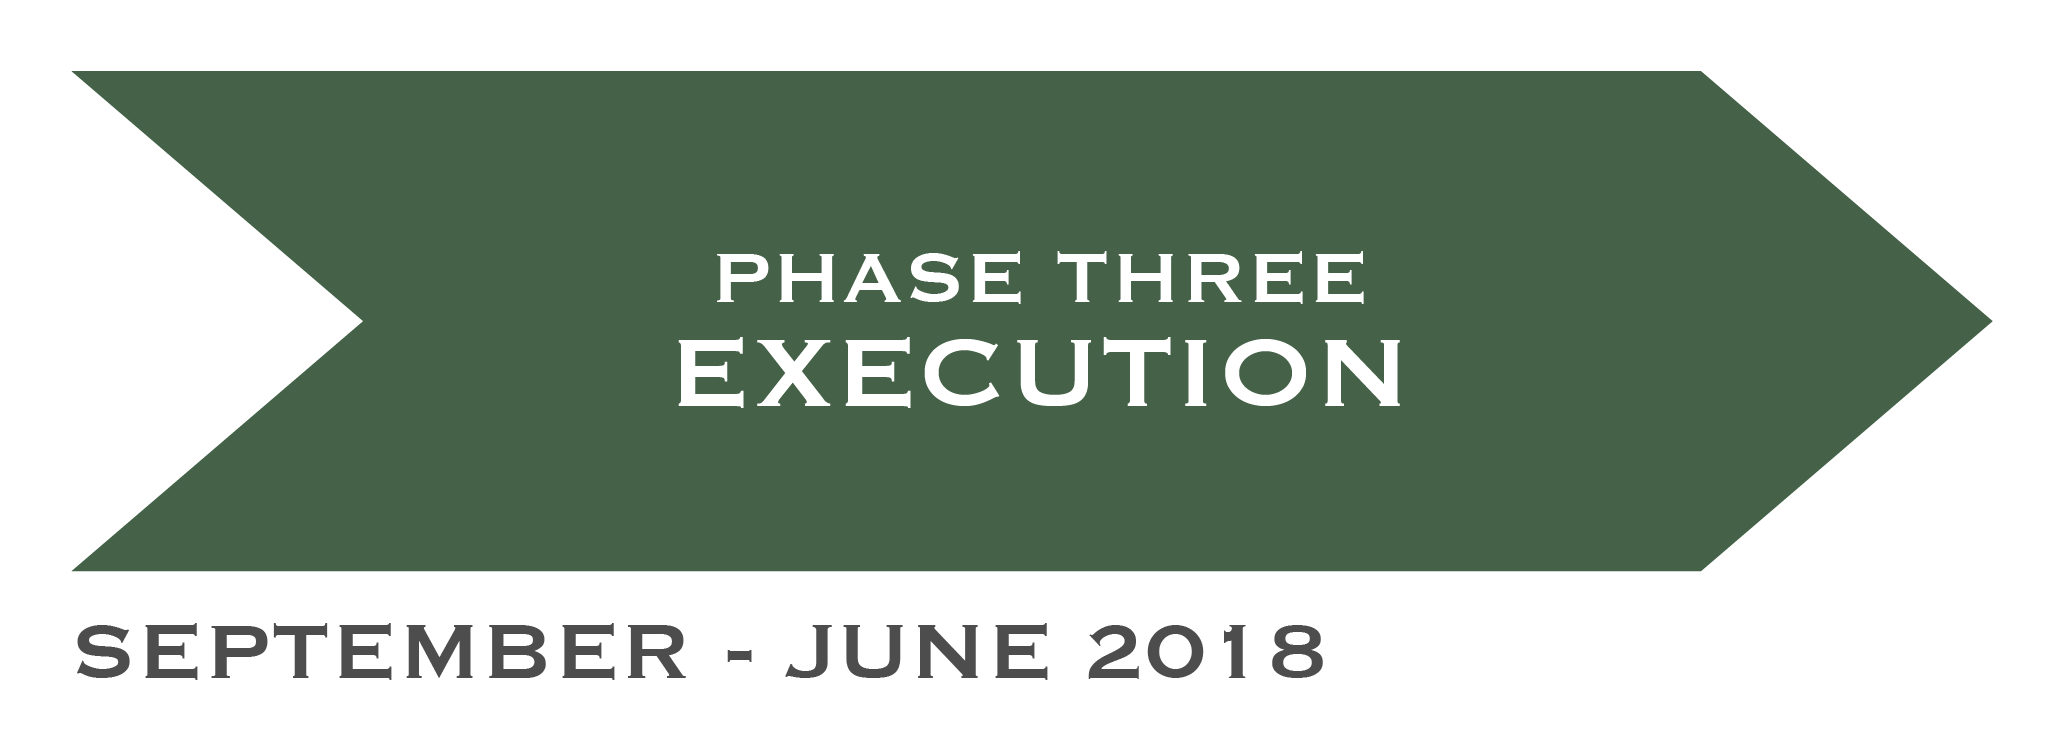 Phase Three - Execution - September – June 2018